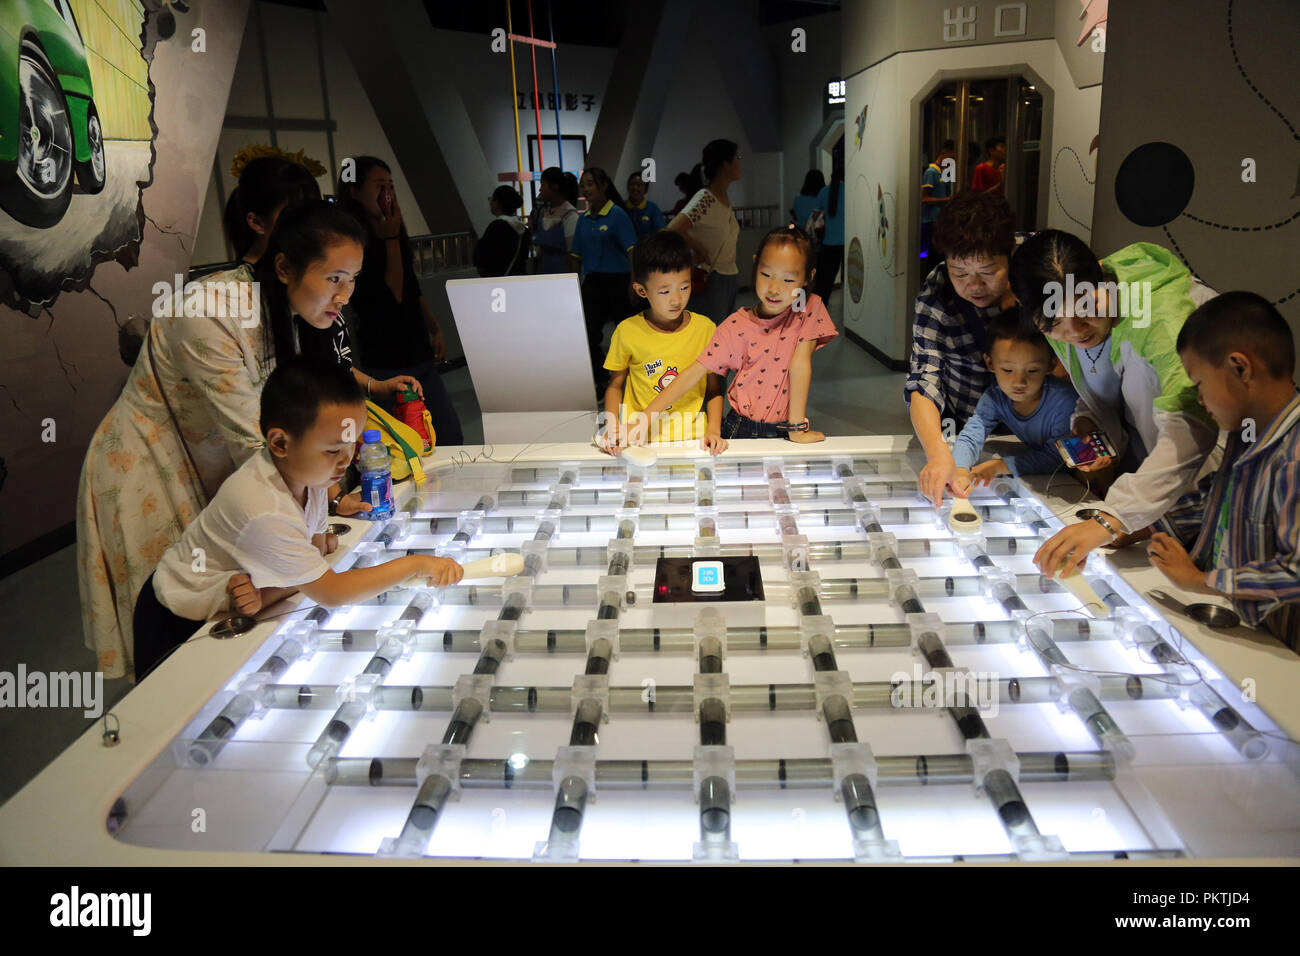 (180915) -- BINZHOU, Sept. 15, 2018 (Xinhua) -- Children accompanied by their parents learn about optics knowledge at Science and Technology Museum in Binzhou, east China's Shandong Province, Sept. 15, 2018. Various activities are scheduled to be held from Sept. 15 to Sept. 21 across China to greet the 2018 National Science Day held each year. (Xinhua/Chen Bin) (sxk) - Stock Image